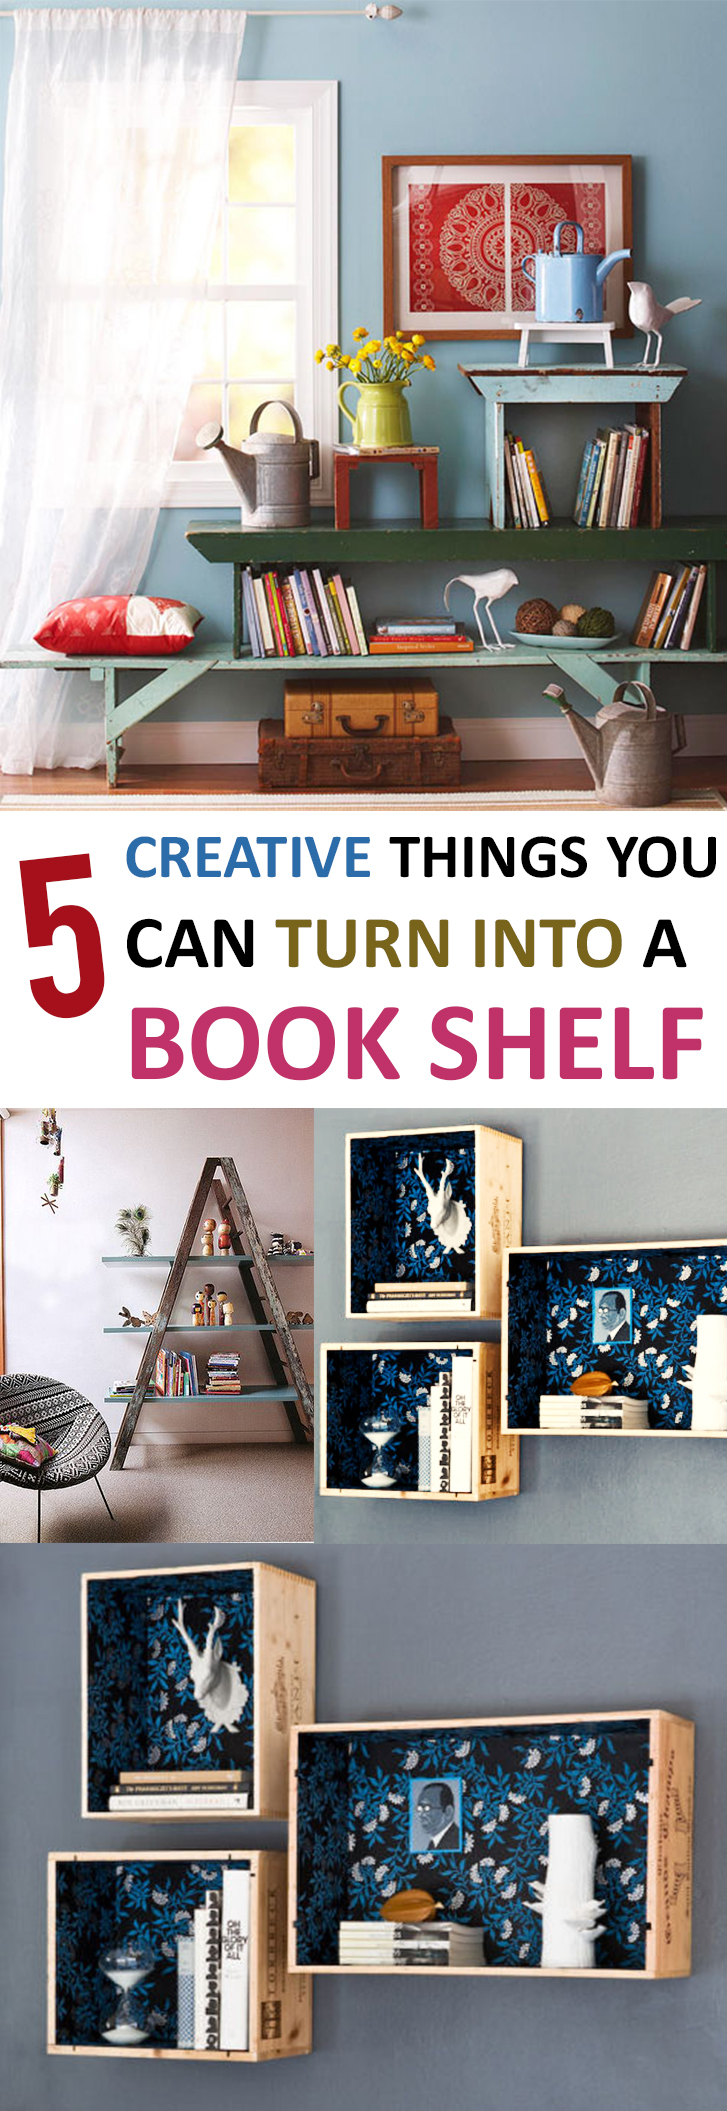 5 Creative Things You Can Turn Into a Book Shelf